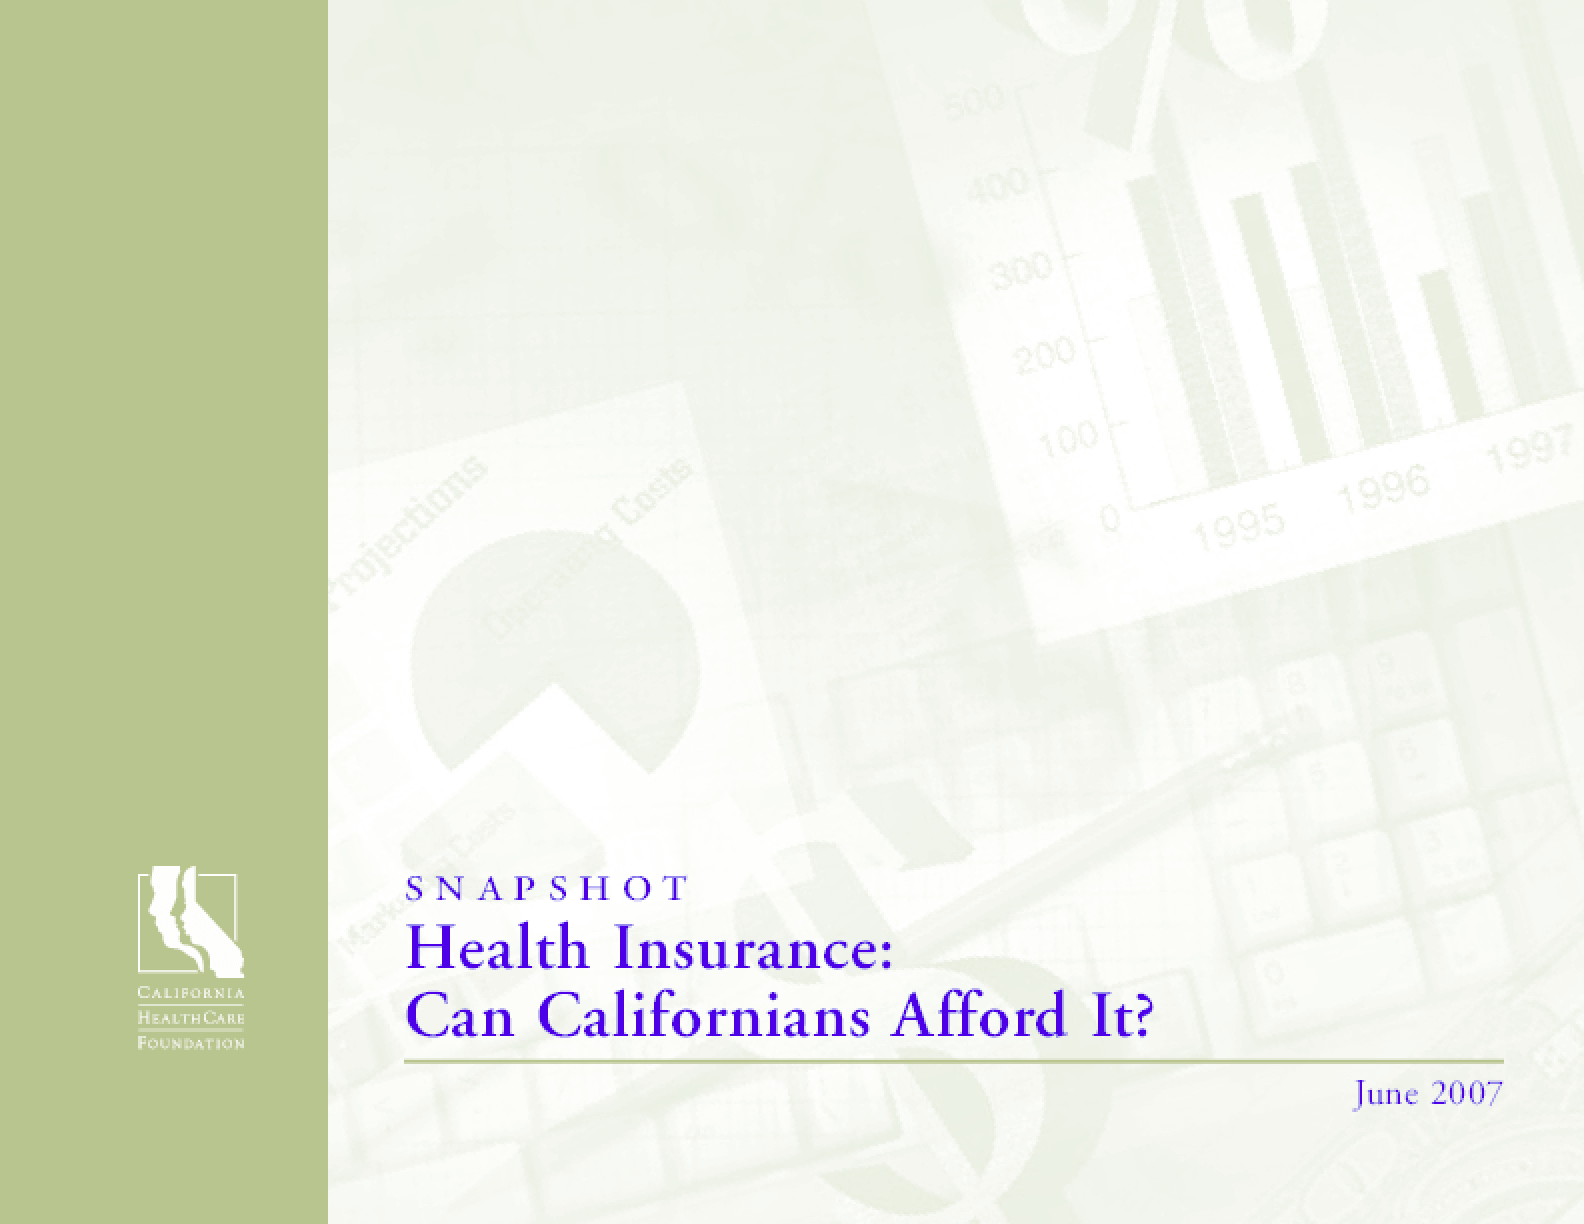 Health Insurance: Can Californians Afford It? 2007